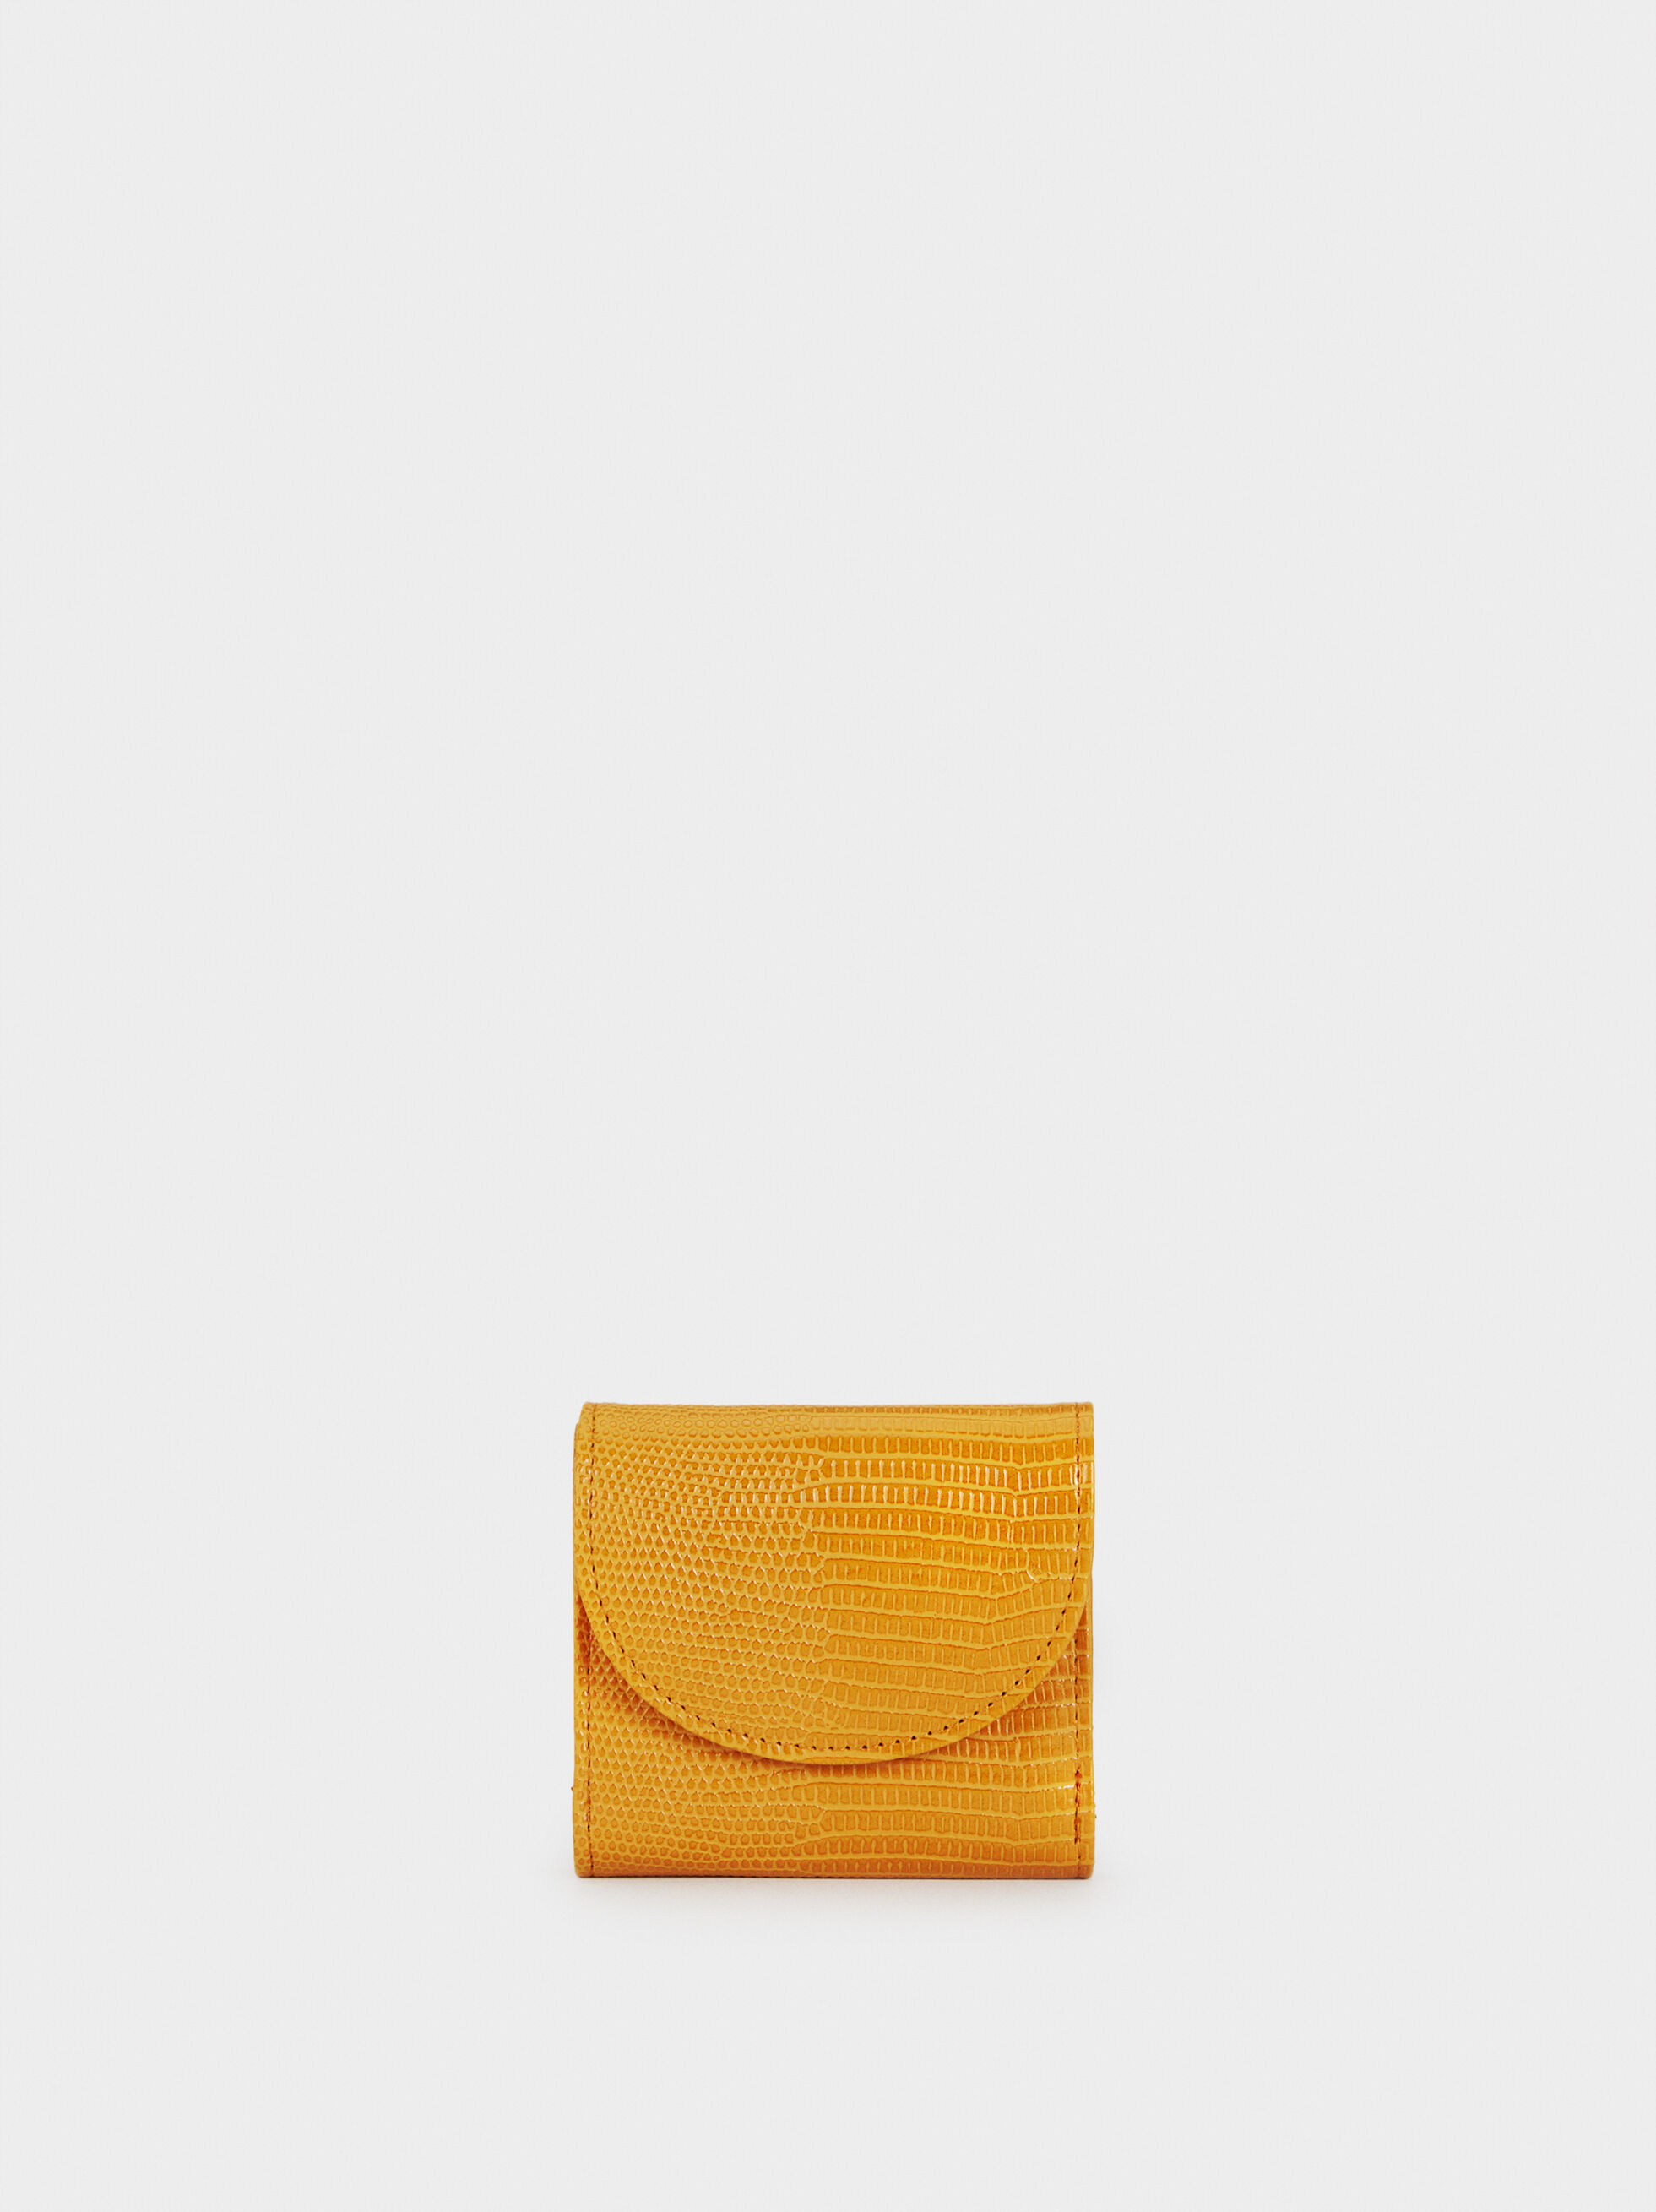 Small Mock Croc Coin Purse, Mustard, hi-res